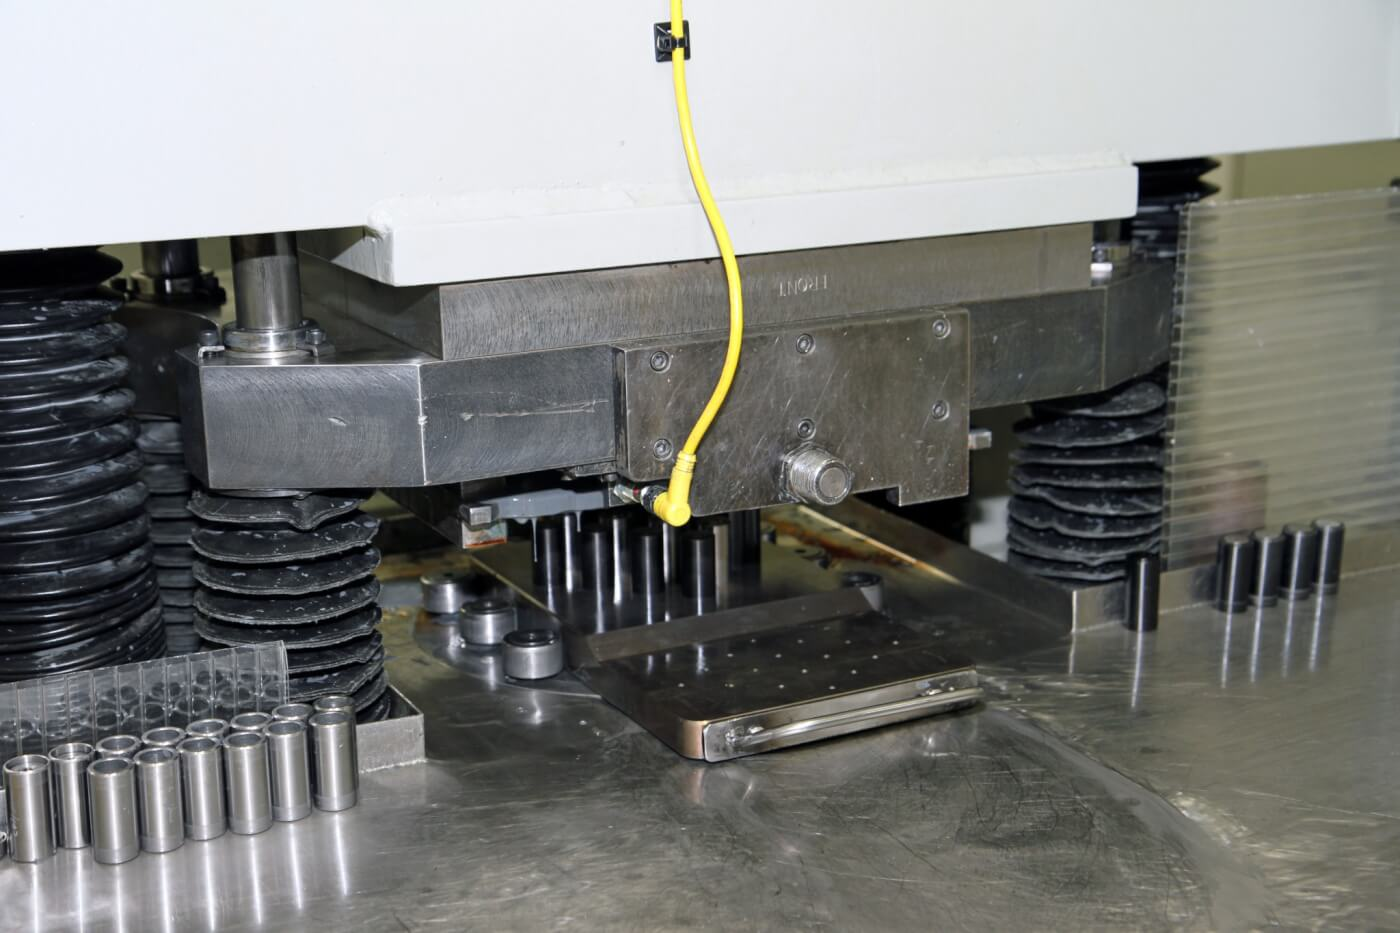 9. The fixture and nozzles are slid under the press where the abrasive media is forced through the nozzles under a great deal of pressure to enlarge and smooth the path of fuel flow through the nozzle.